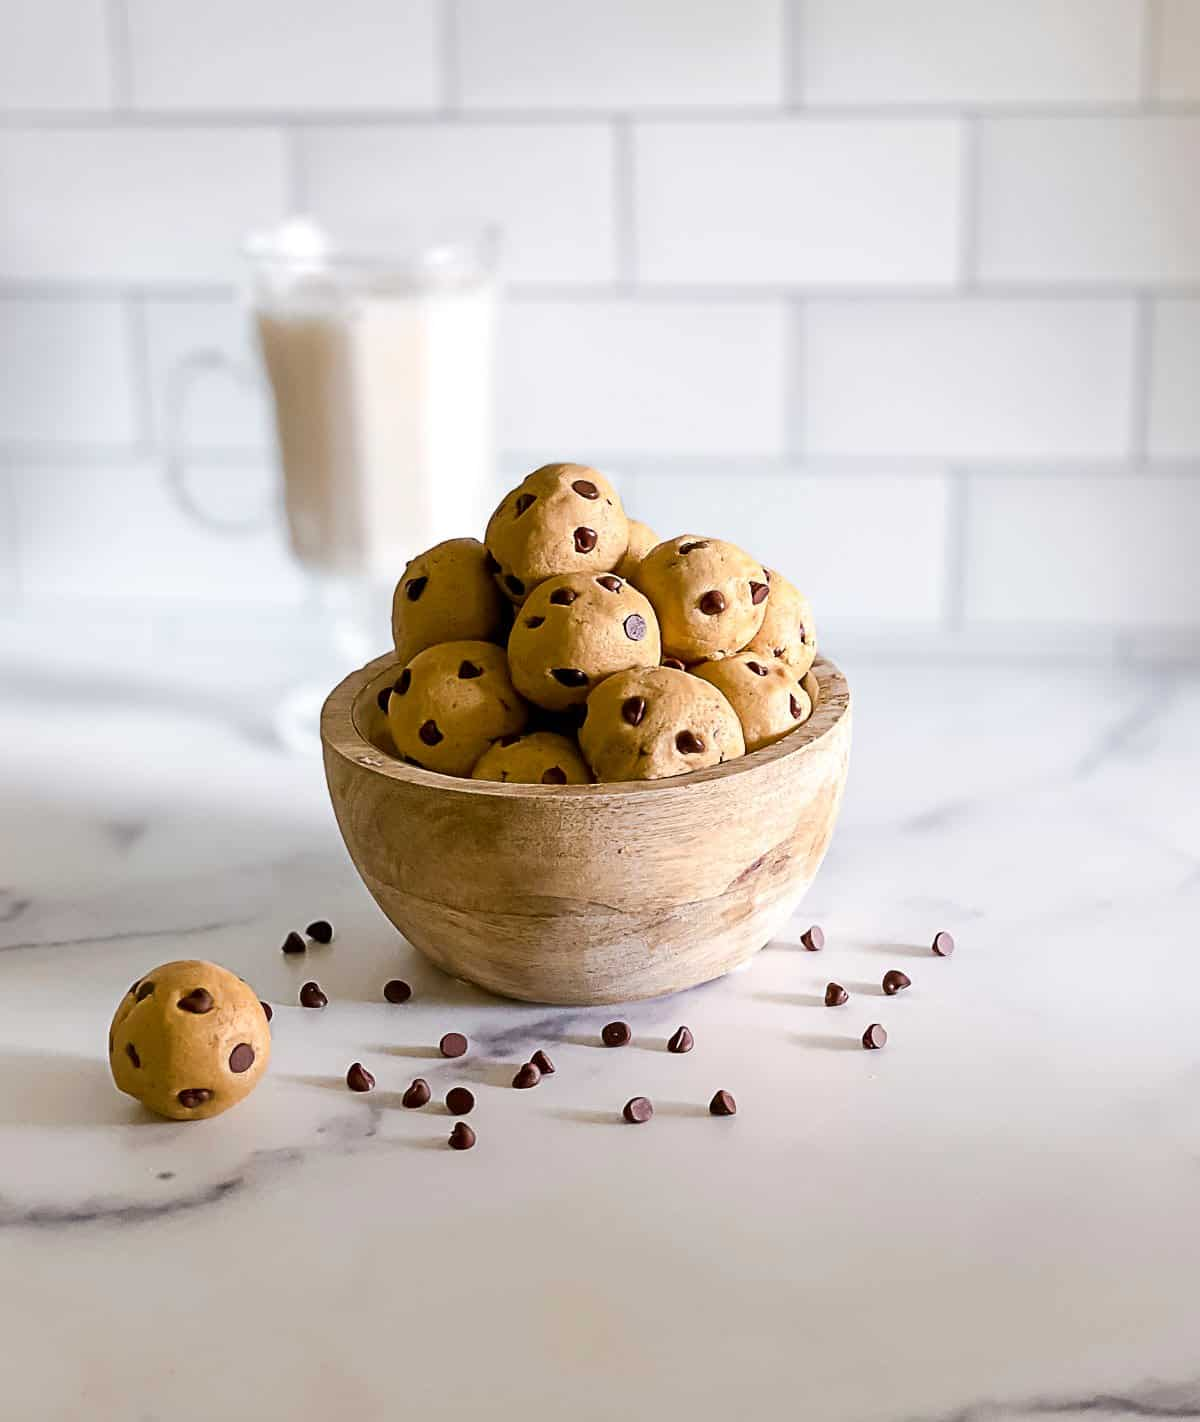 Mini chocolate chip cookie dough balls in a bowl with chocolate chips around it.